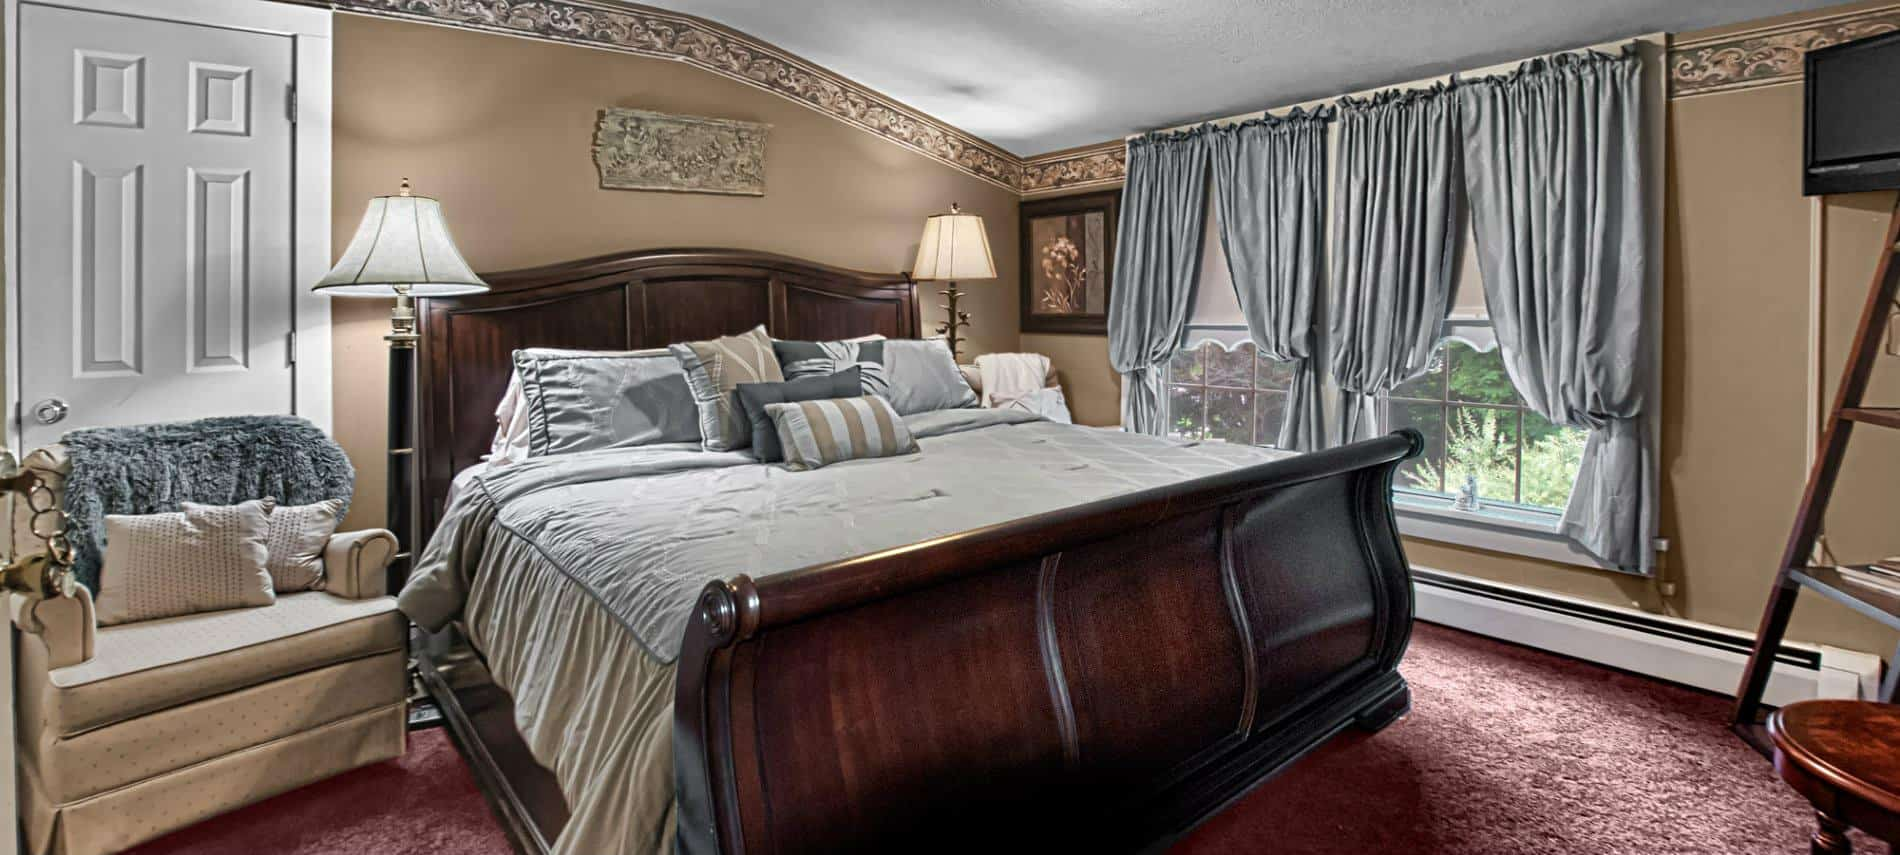 Elegant guest room with tan walls, burgundy carpet, wooden sleigh bed, large window and sitting chairs